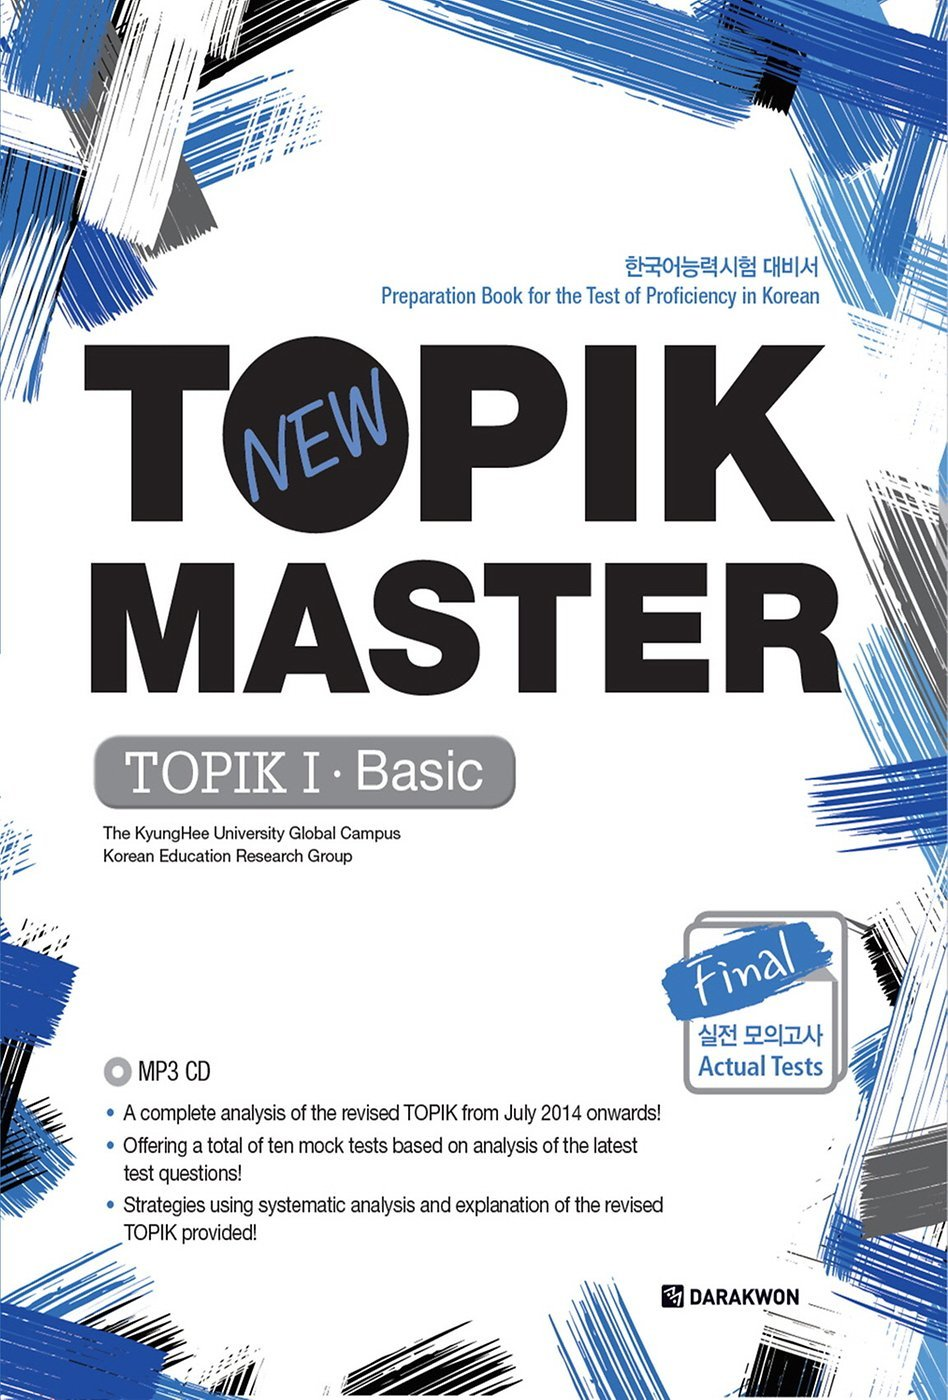 Details about TOPIK Master Series Actual Test MP3 CD Hangul Learn Korean  Text Book BO14